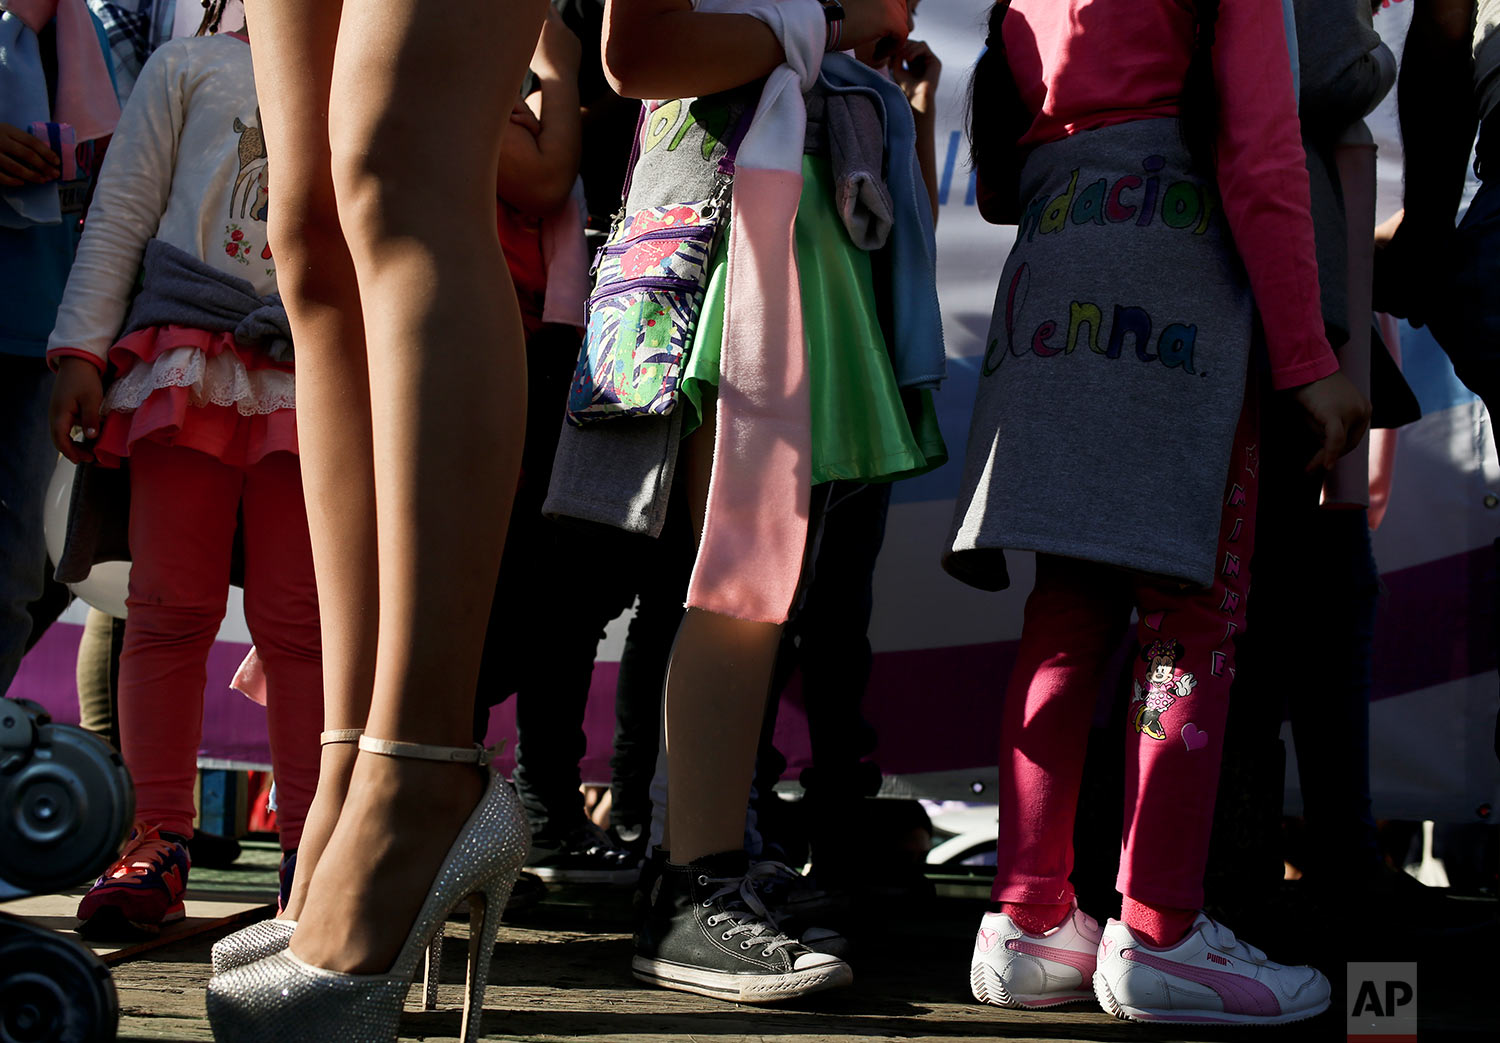 In this July 1, 2017 photo, transgender girls stand by a transvestite during a Gay Pride march in Santiago, Chile. The center-left government has been pushing an array of measures for gender rights, ranging from decriminalizing some abortions to demanding greater acceptance for transgender people in general and children in particular. (AP Photo/Esteban Felix)